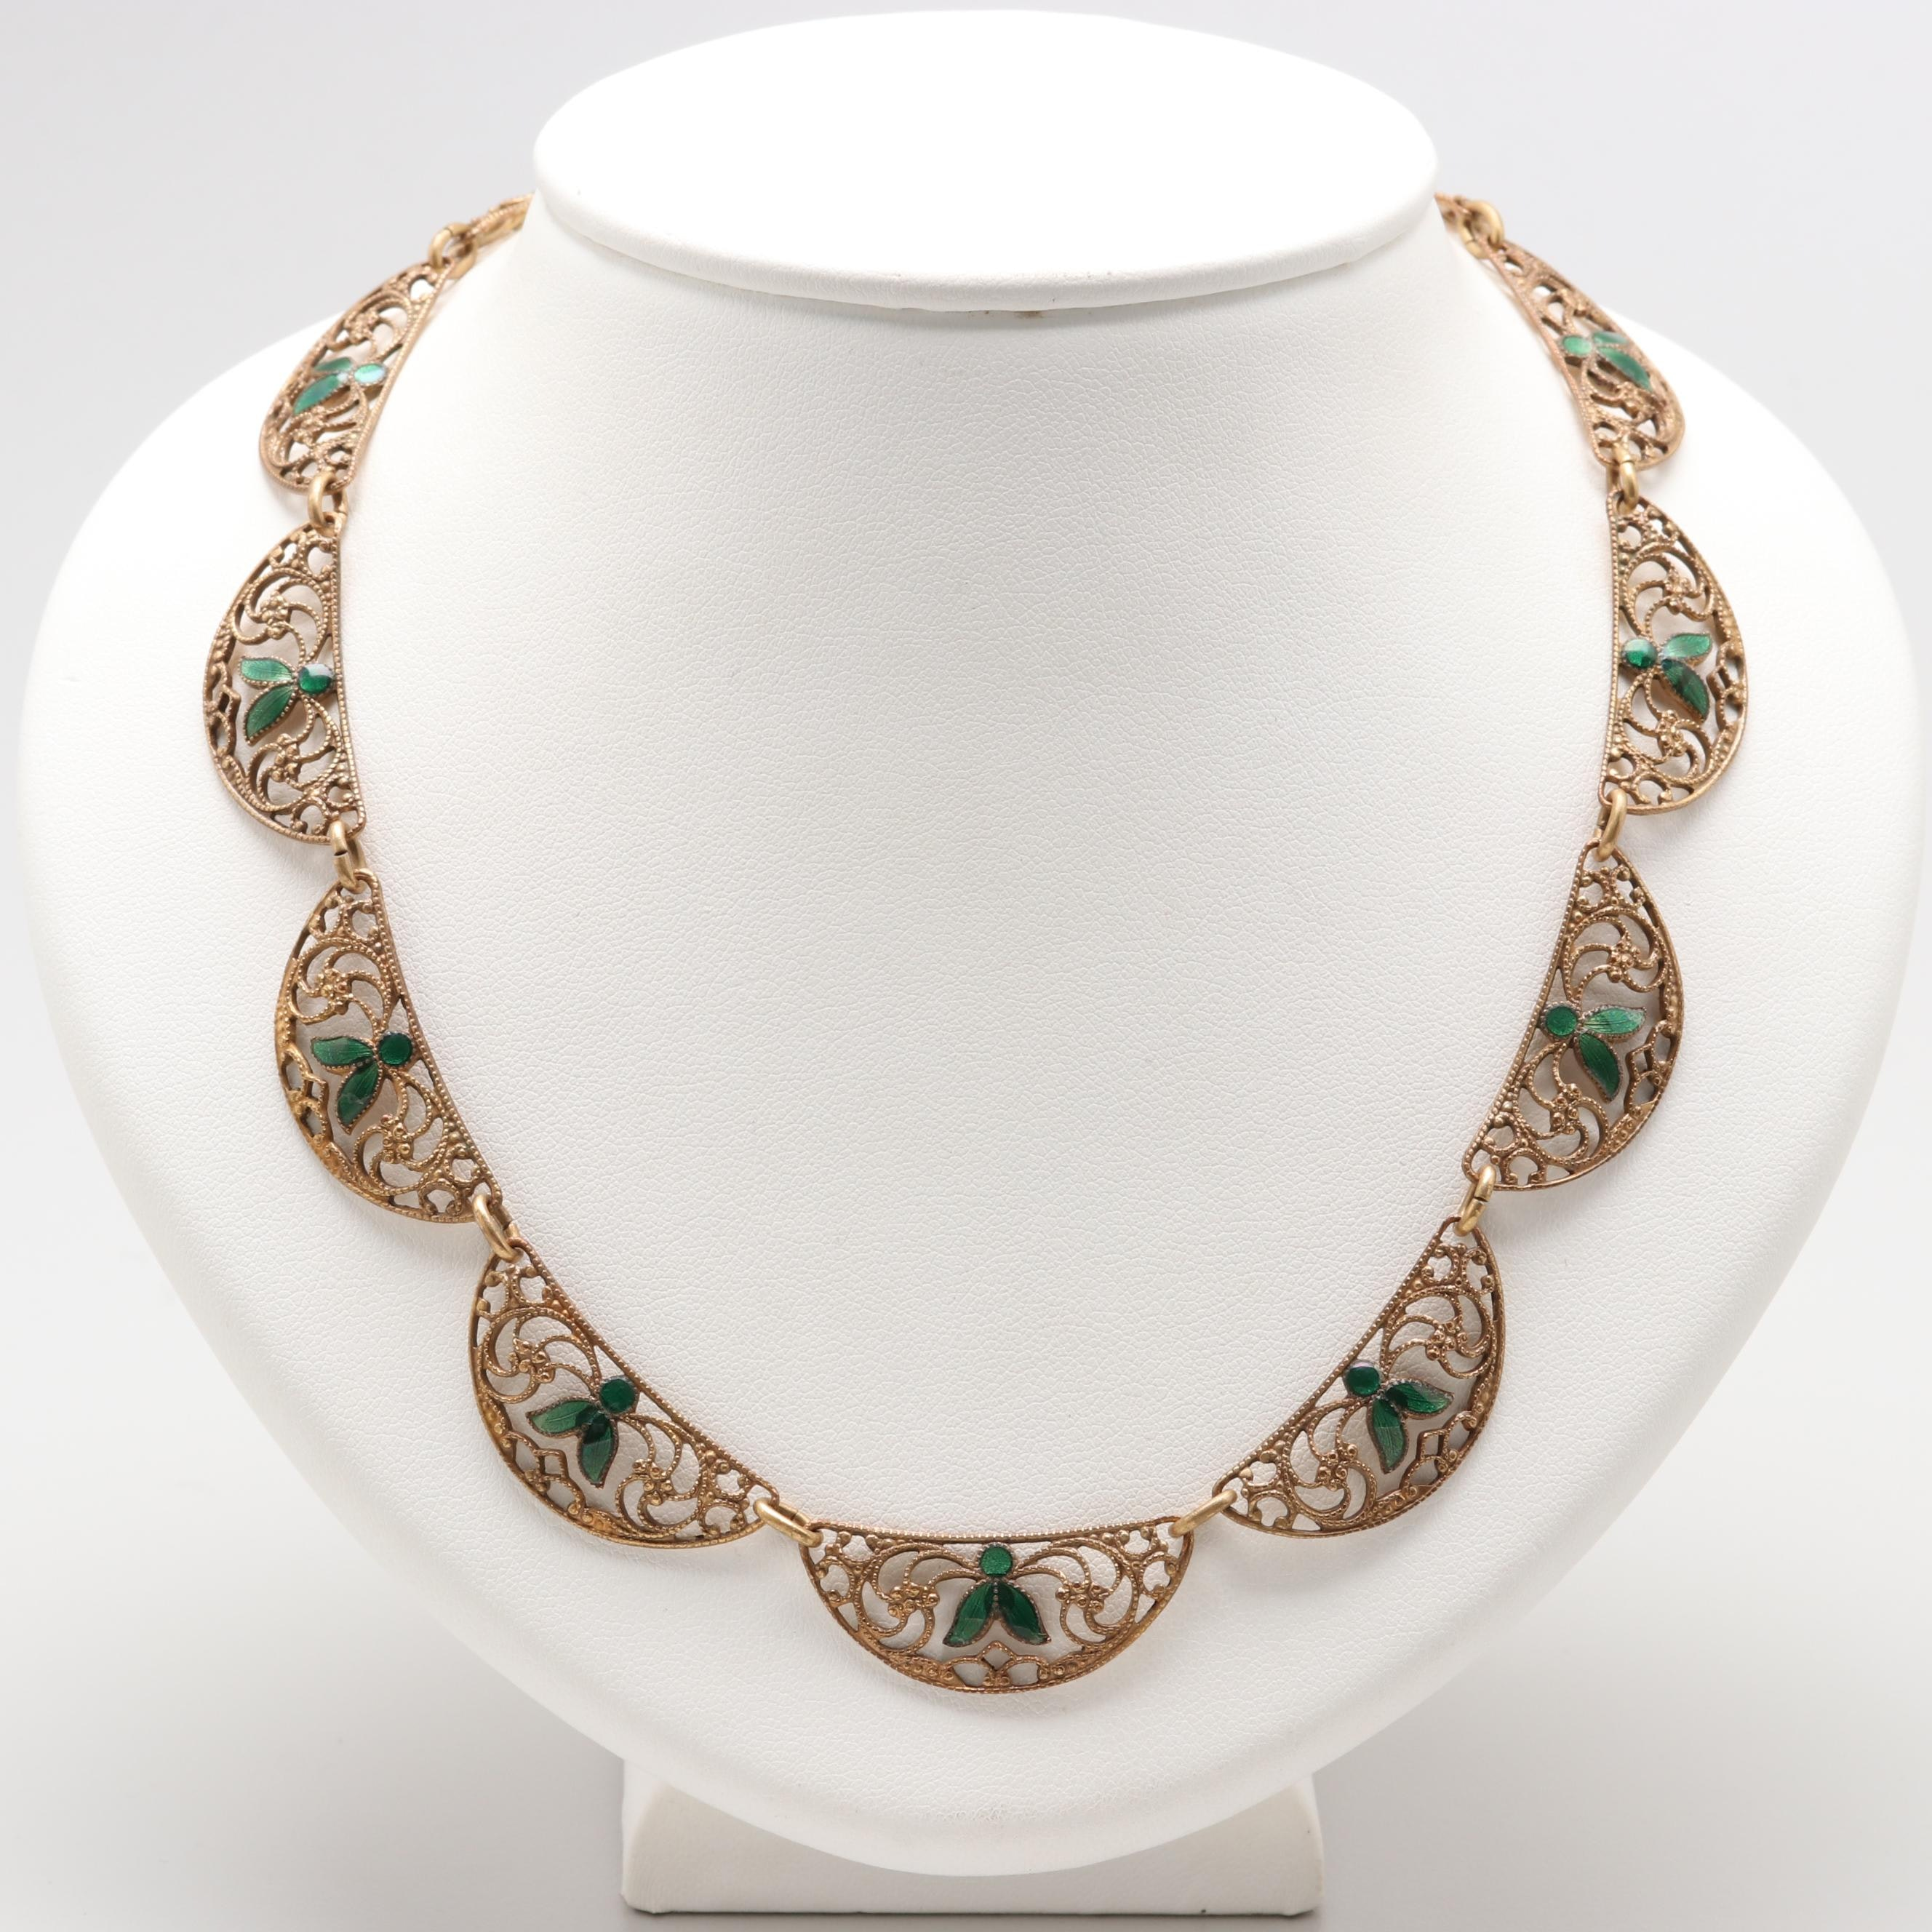 Edwardian Gold-Tone Filigree and Enamel Half Moon Link Necklace